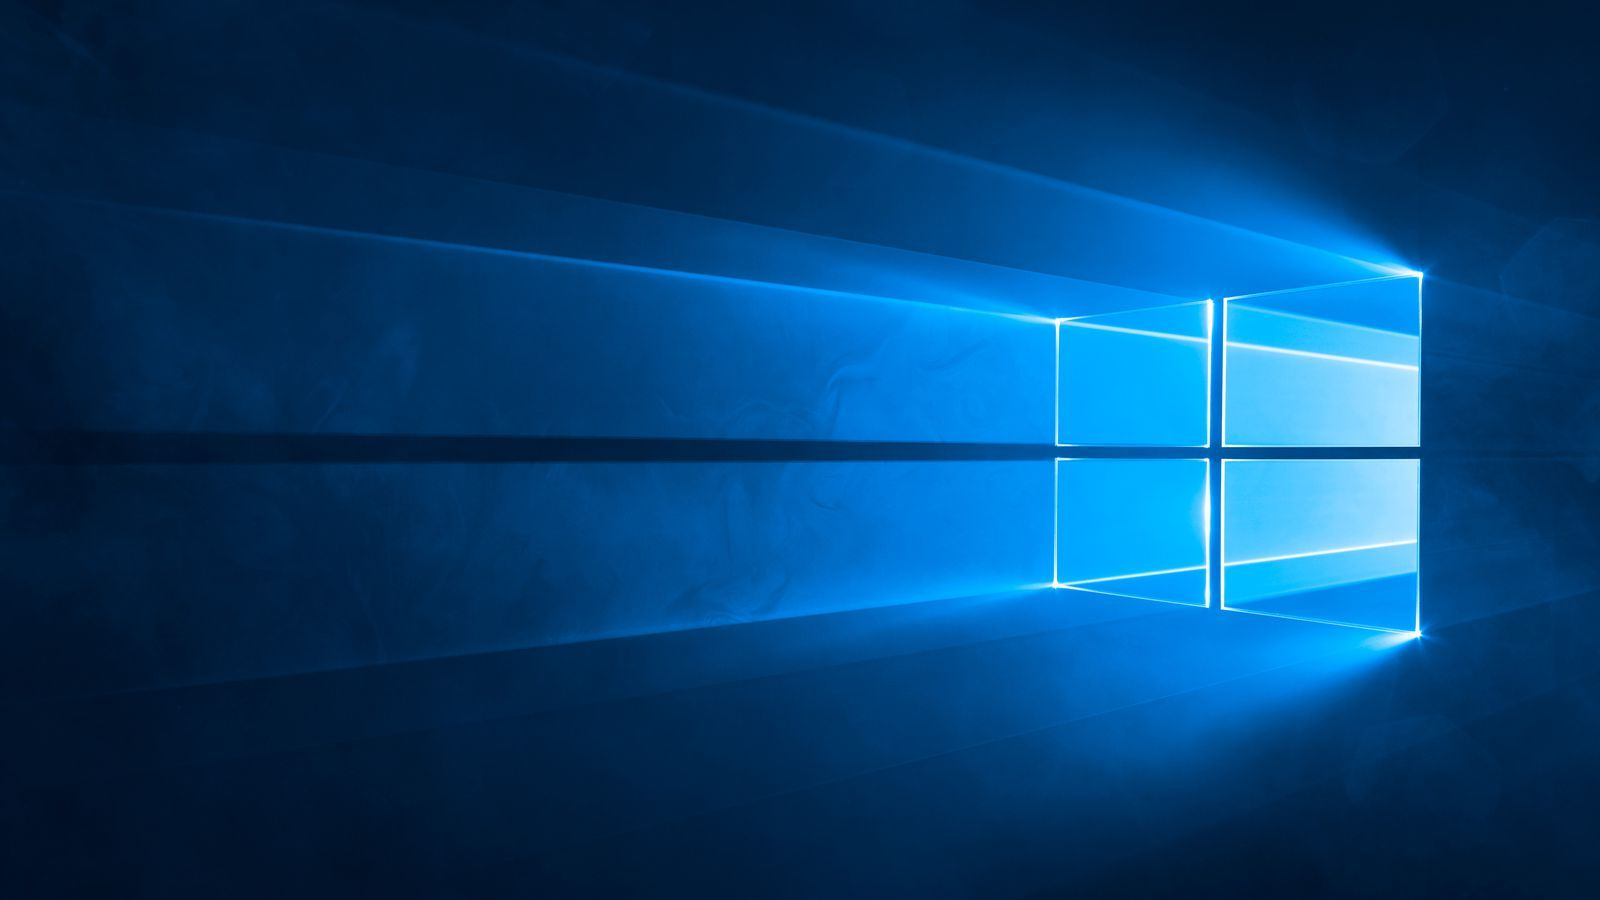 13 Things To Tweak When Setting Up A Windows 10 Laptop Wallpaper Windows 10 Windows Wallpaper Windows 10 Logo